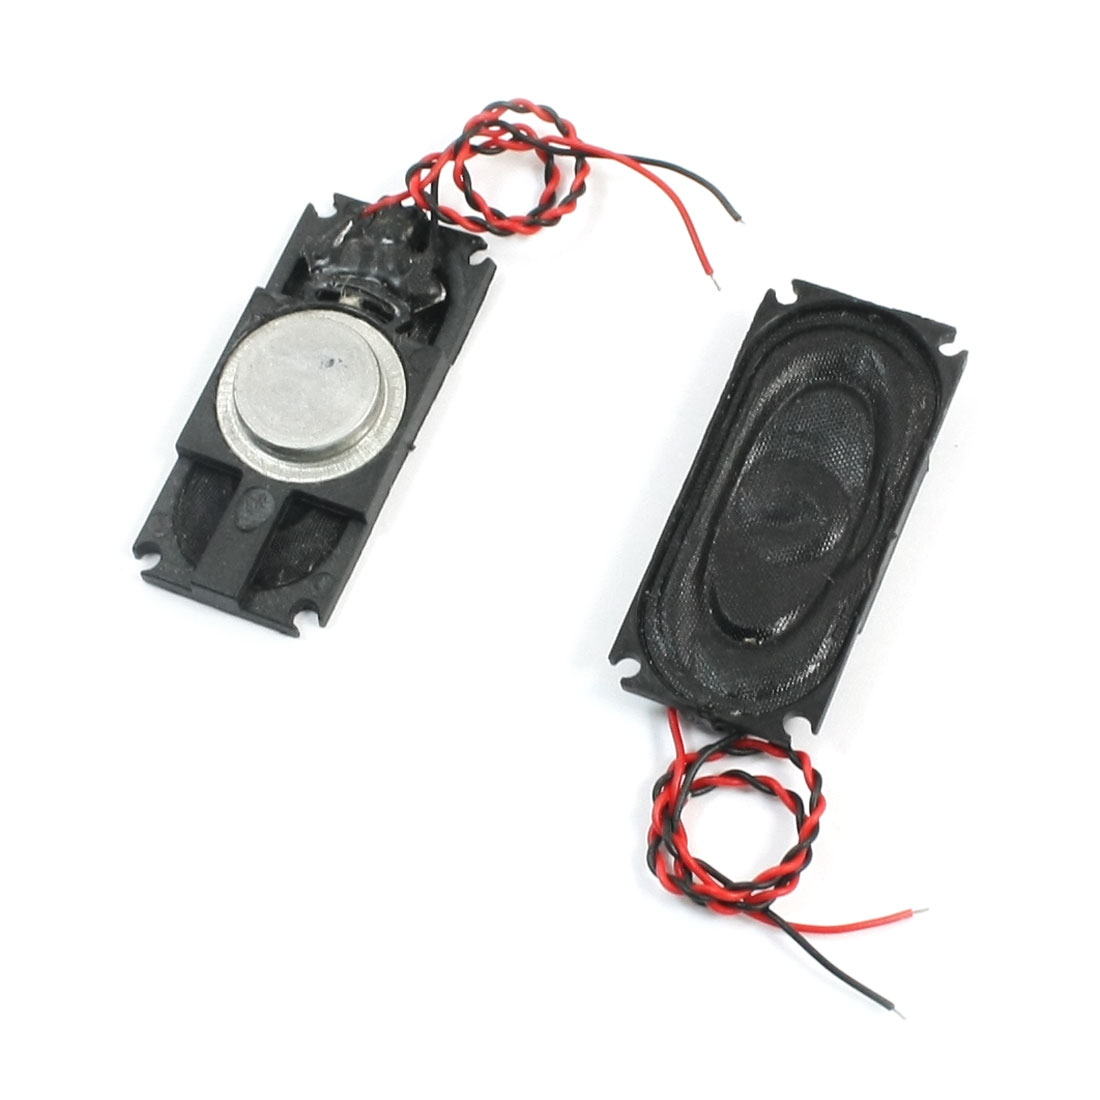 2Pcs 1W 8 Ohm 2-Wire Connect Black Rectangle Case Notebook Tablet PC Magnet Speaker Audio Amplifier Loudspeaker 36mm x 16mm